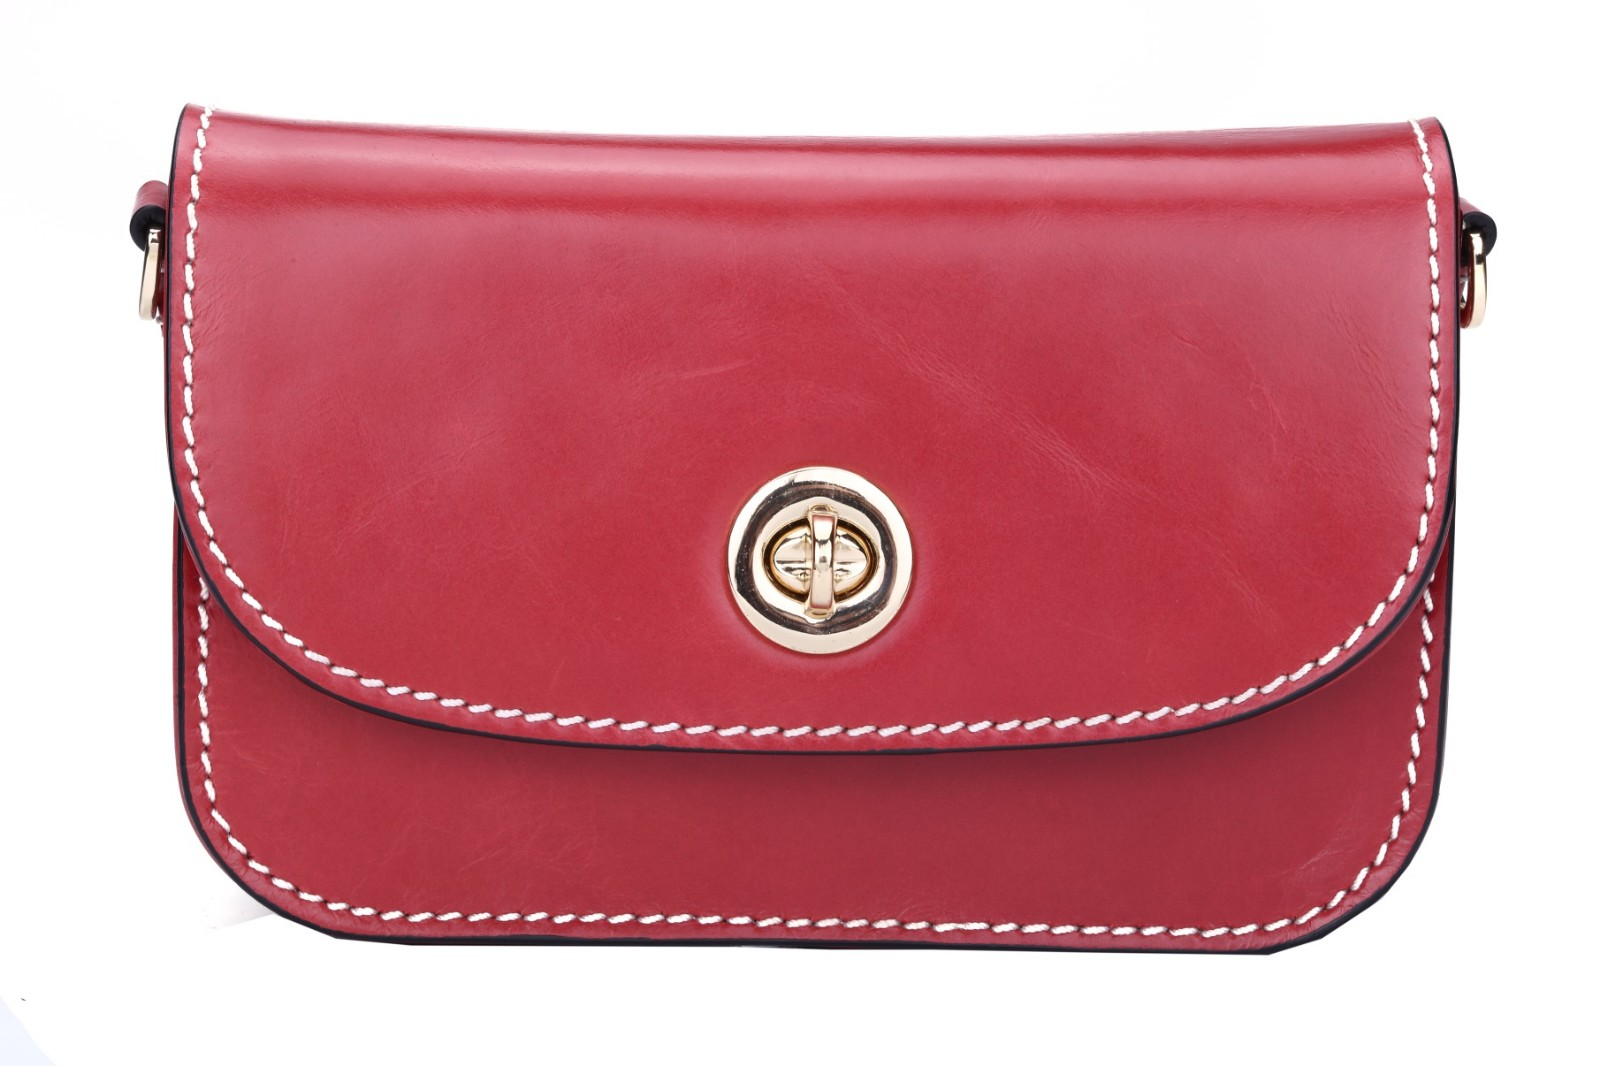 GF bags long cheap clutch bags check now for women-5